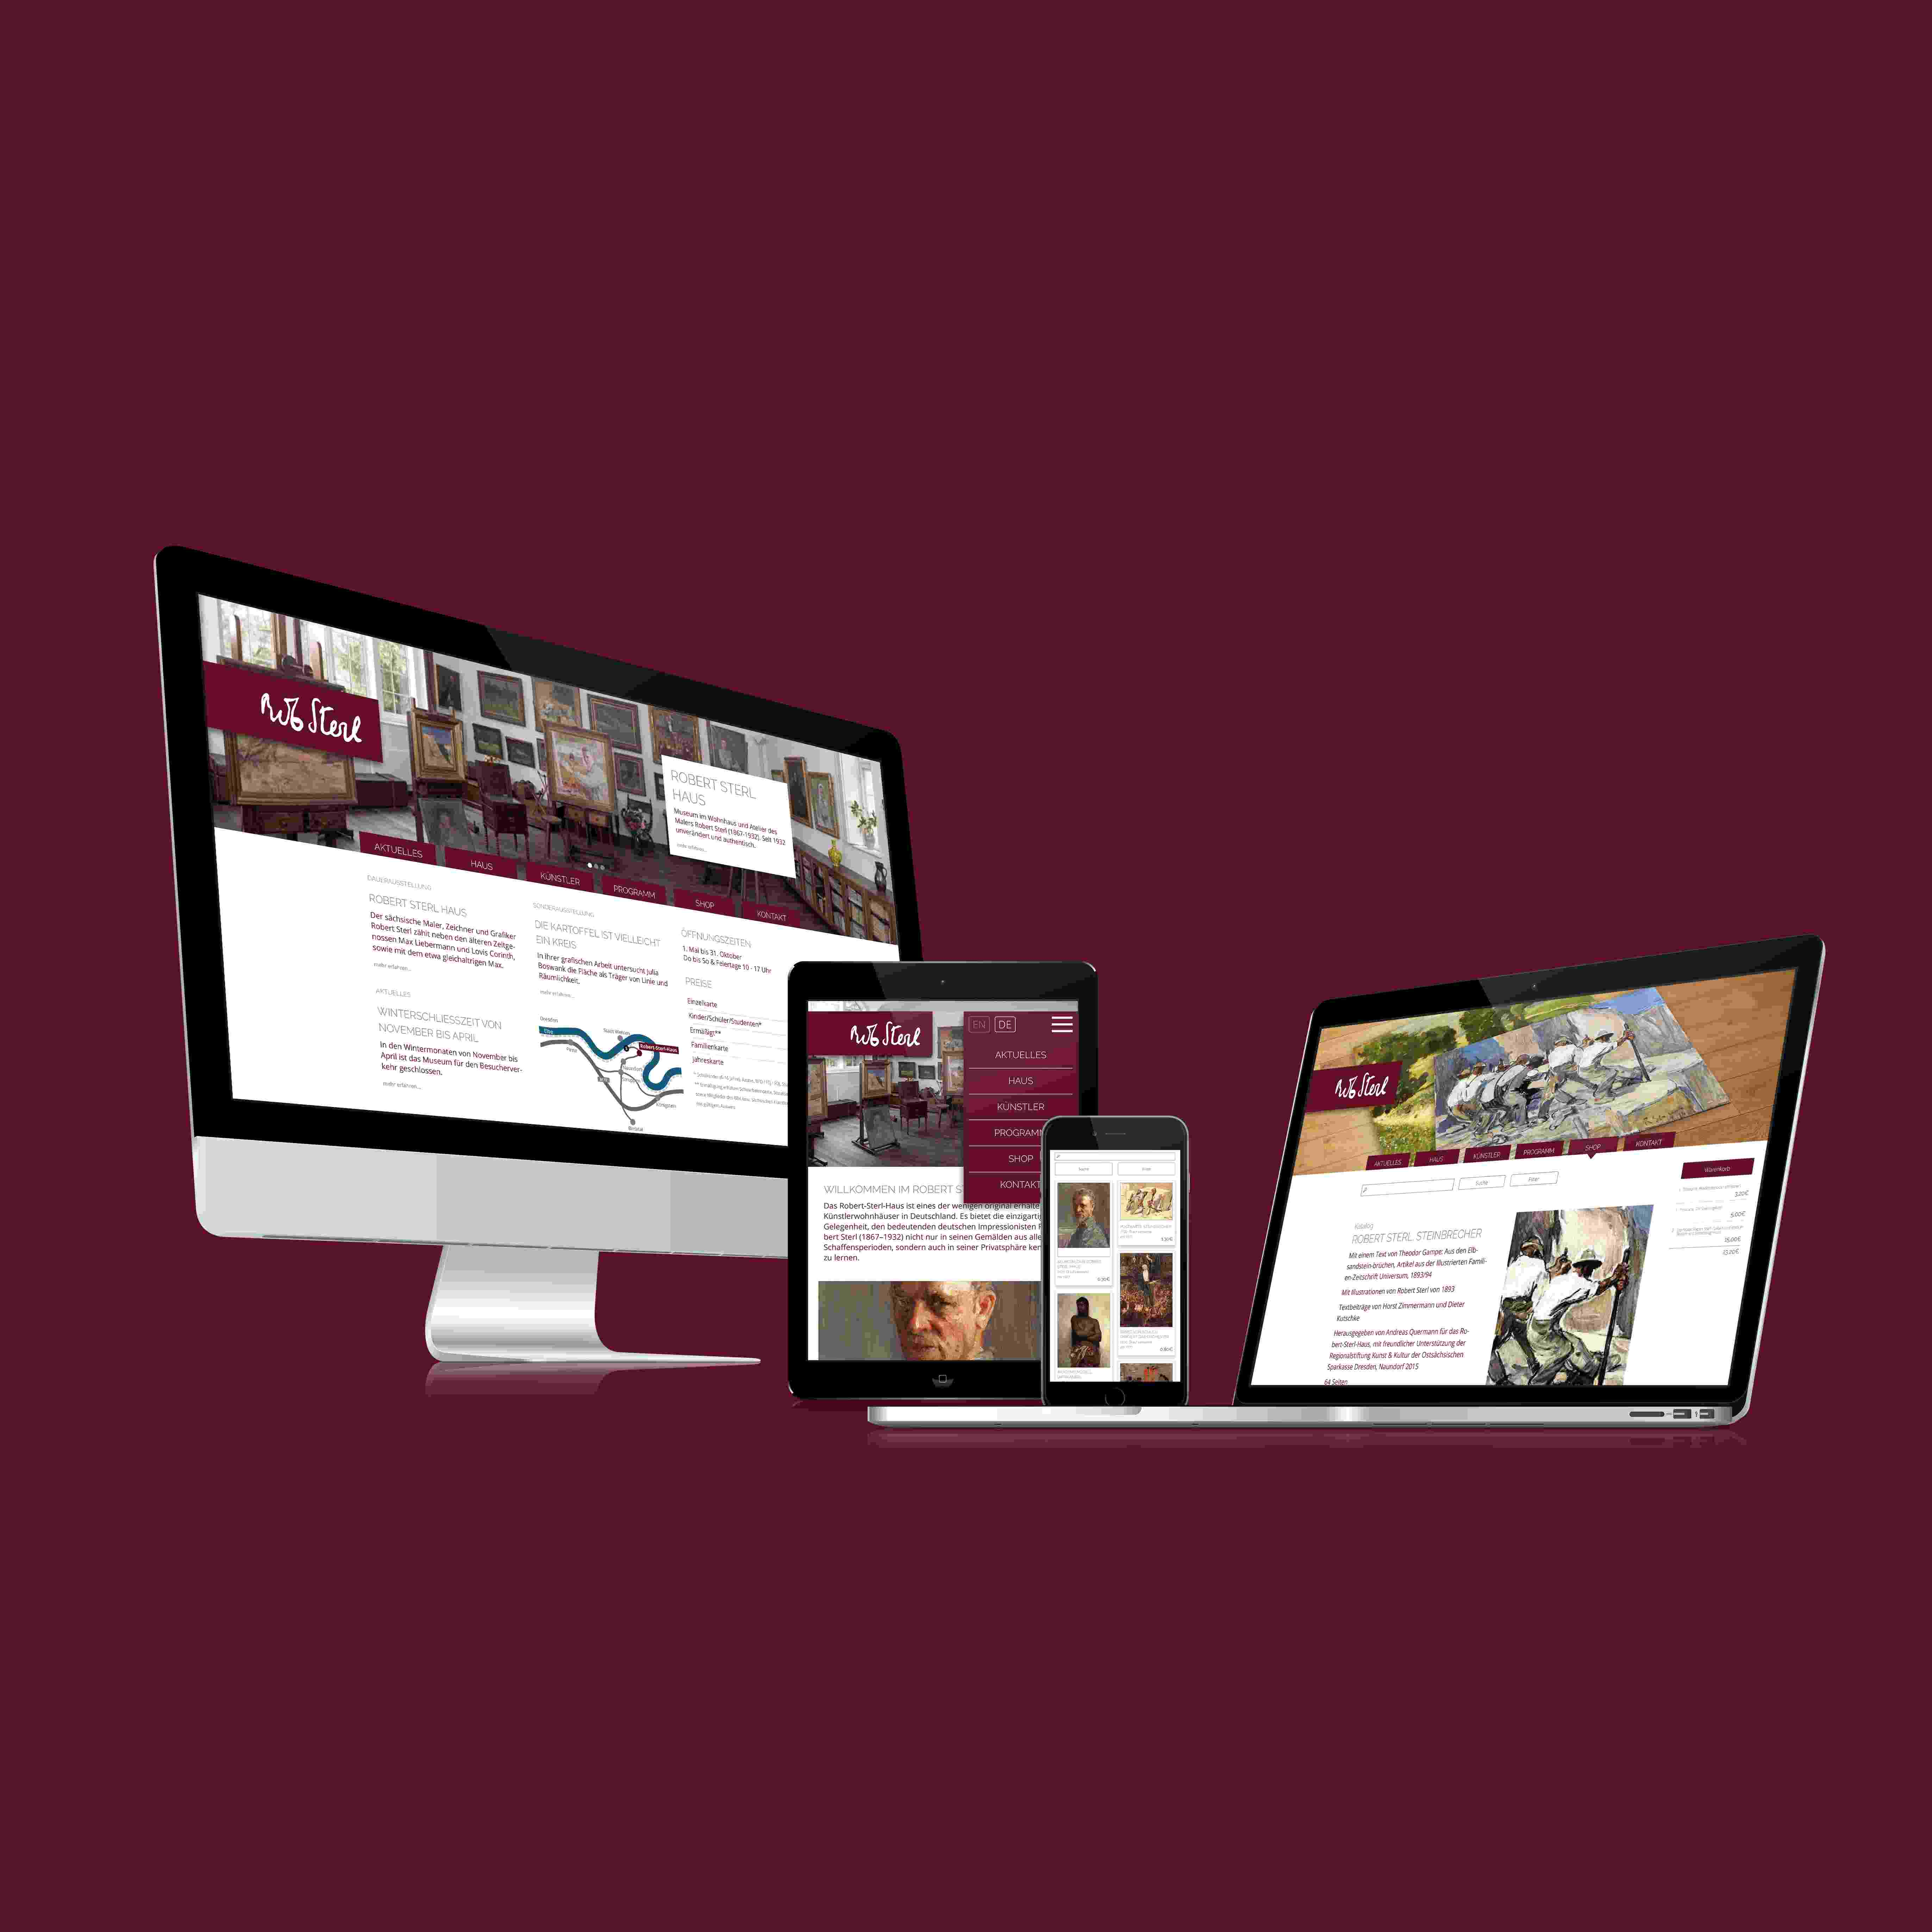 Robert-Sterl-Hause Website Re-Design